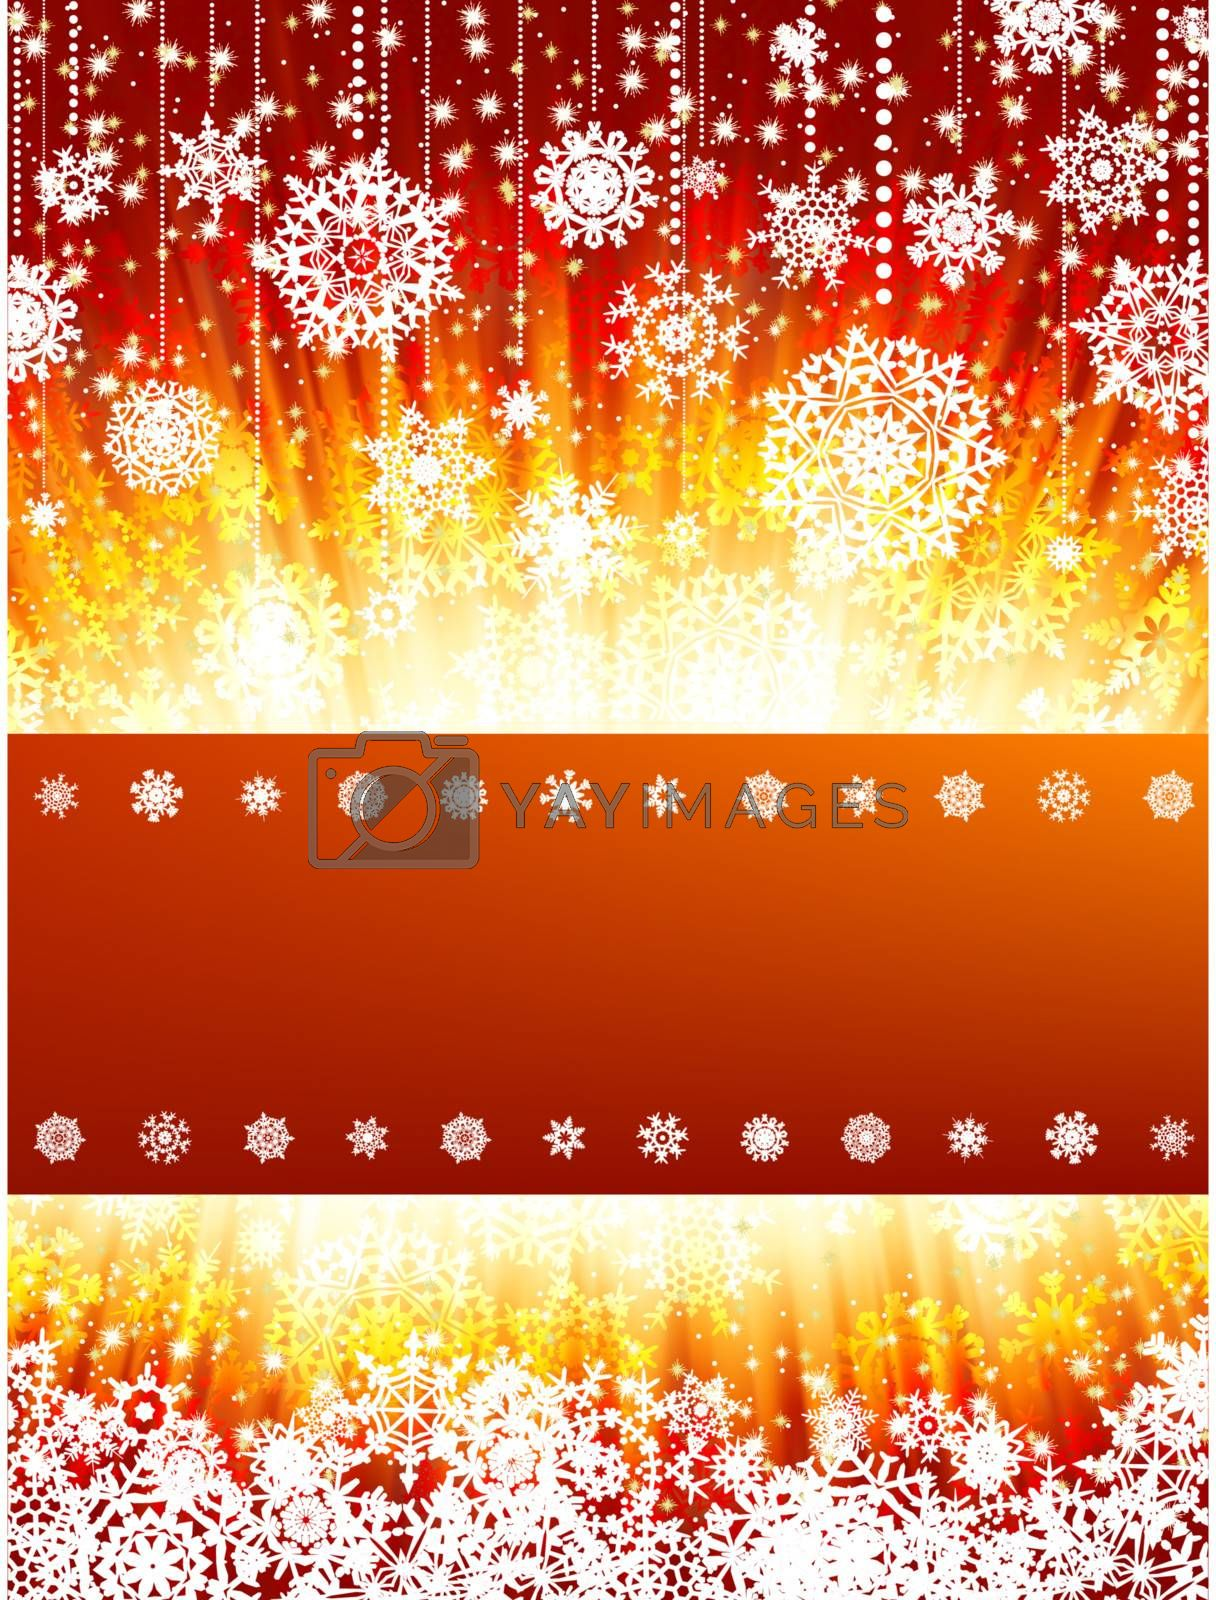 Royalty free image of Bright new year and cristmas card. EPS 8 by Petrov_Vladimir